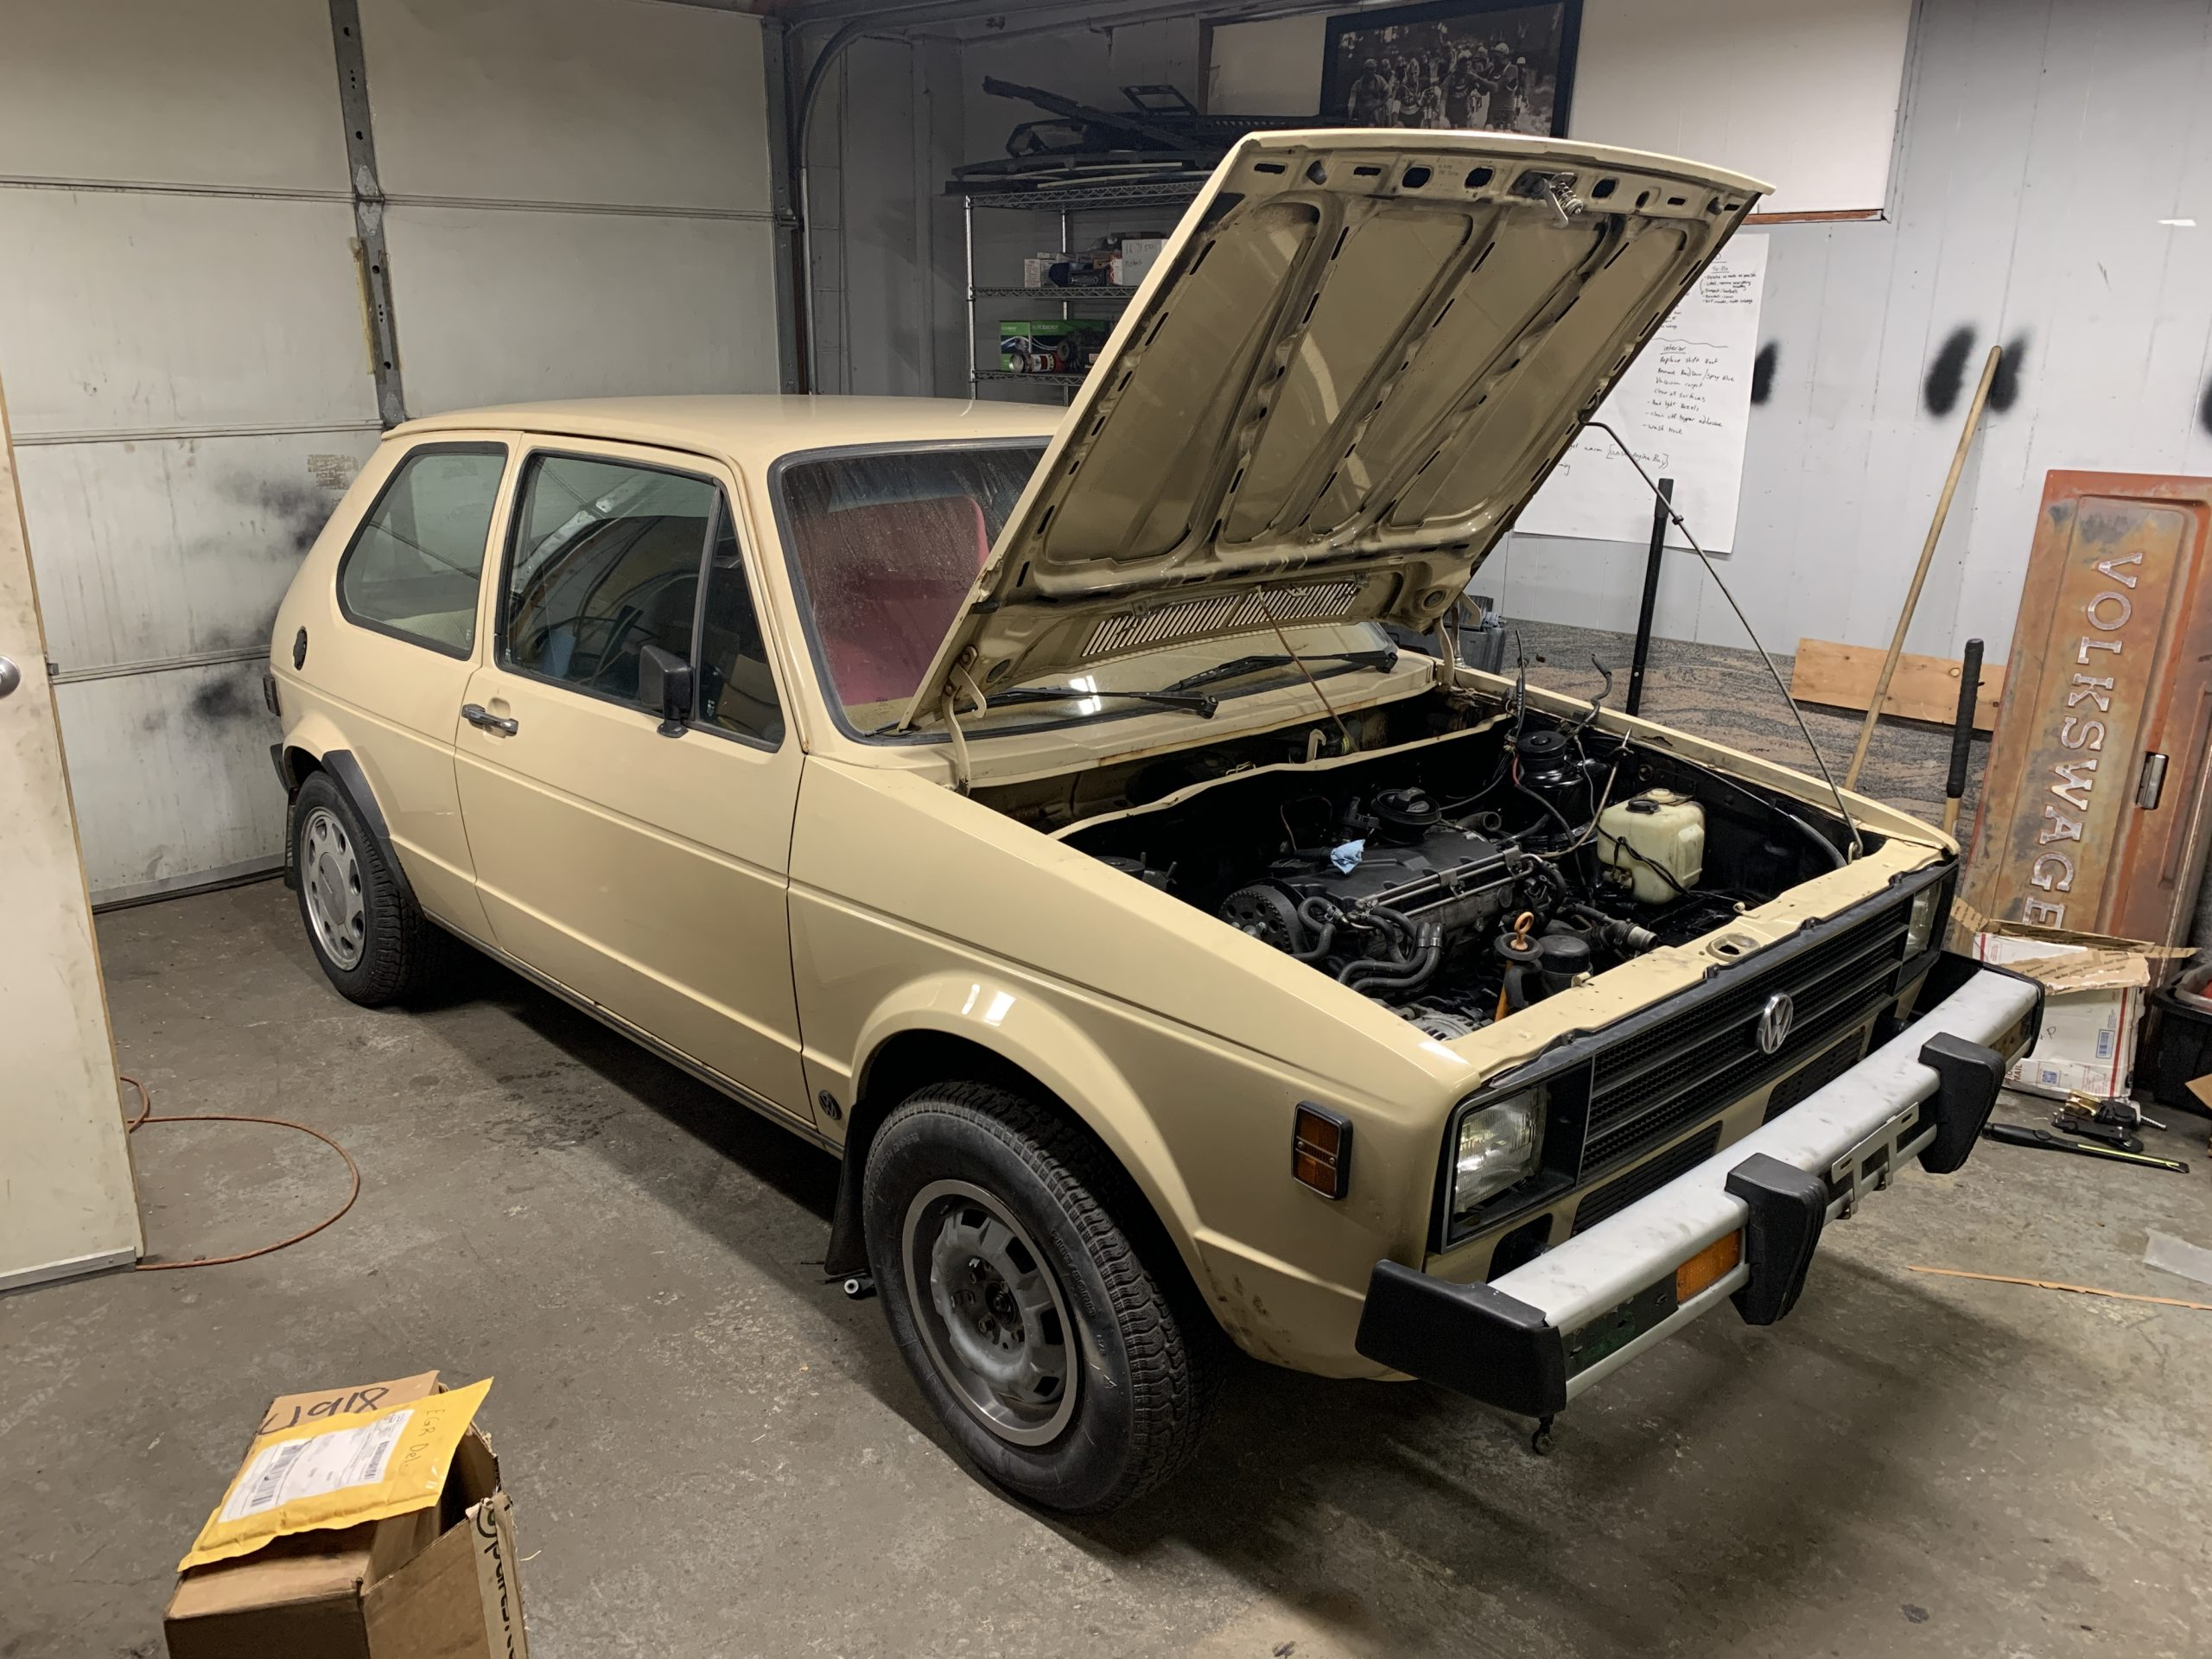 1980 VW Rabbit TDI swap engine Aug 23, 5 44 37 PM